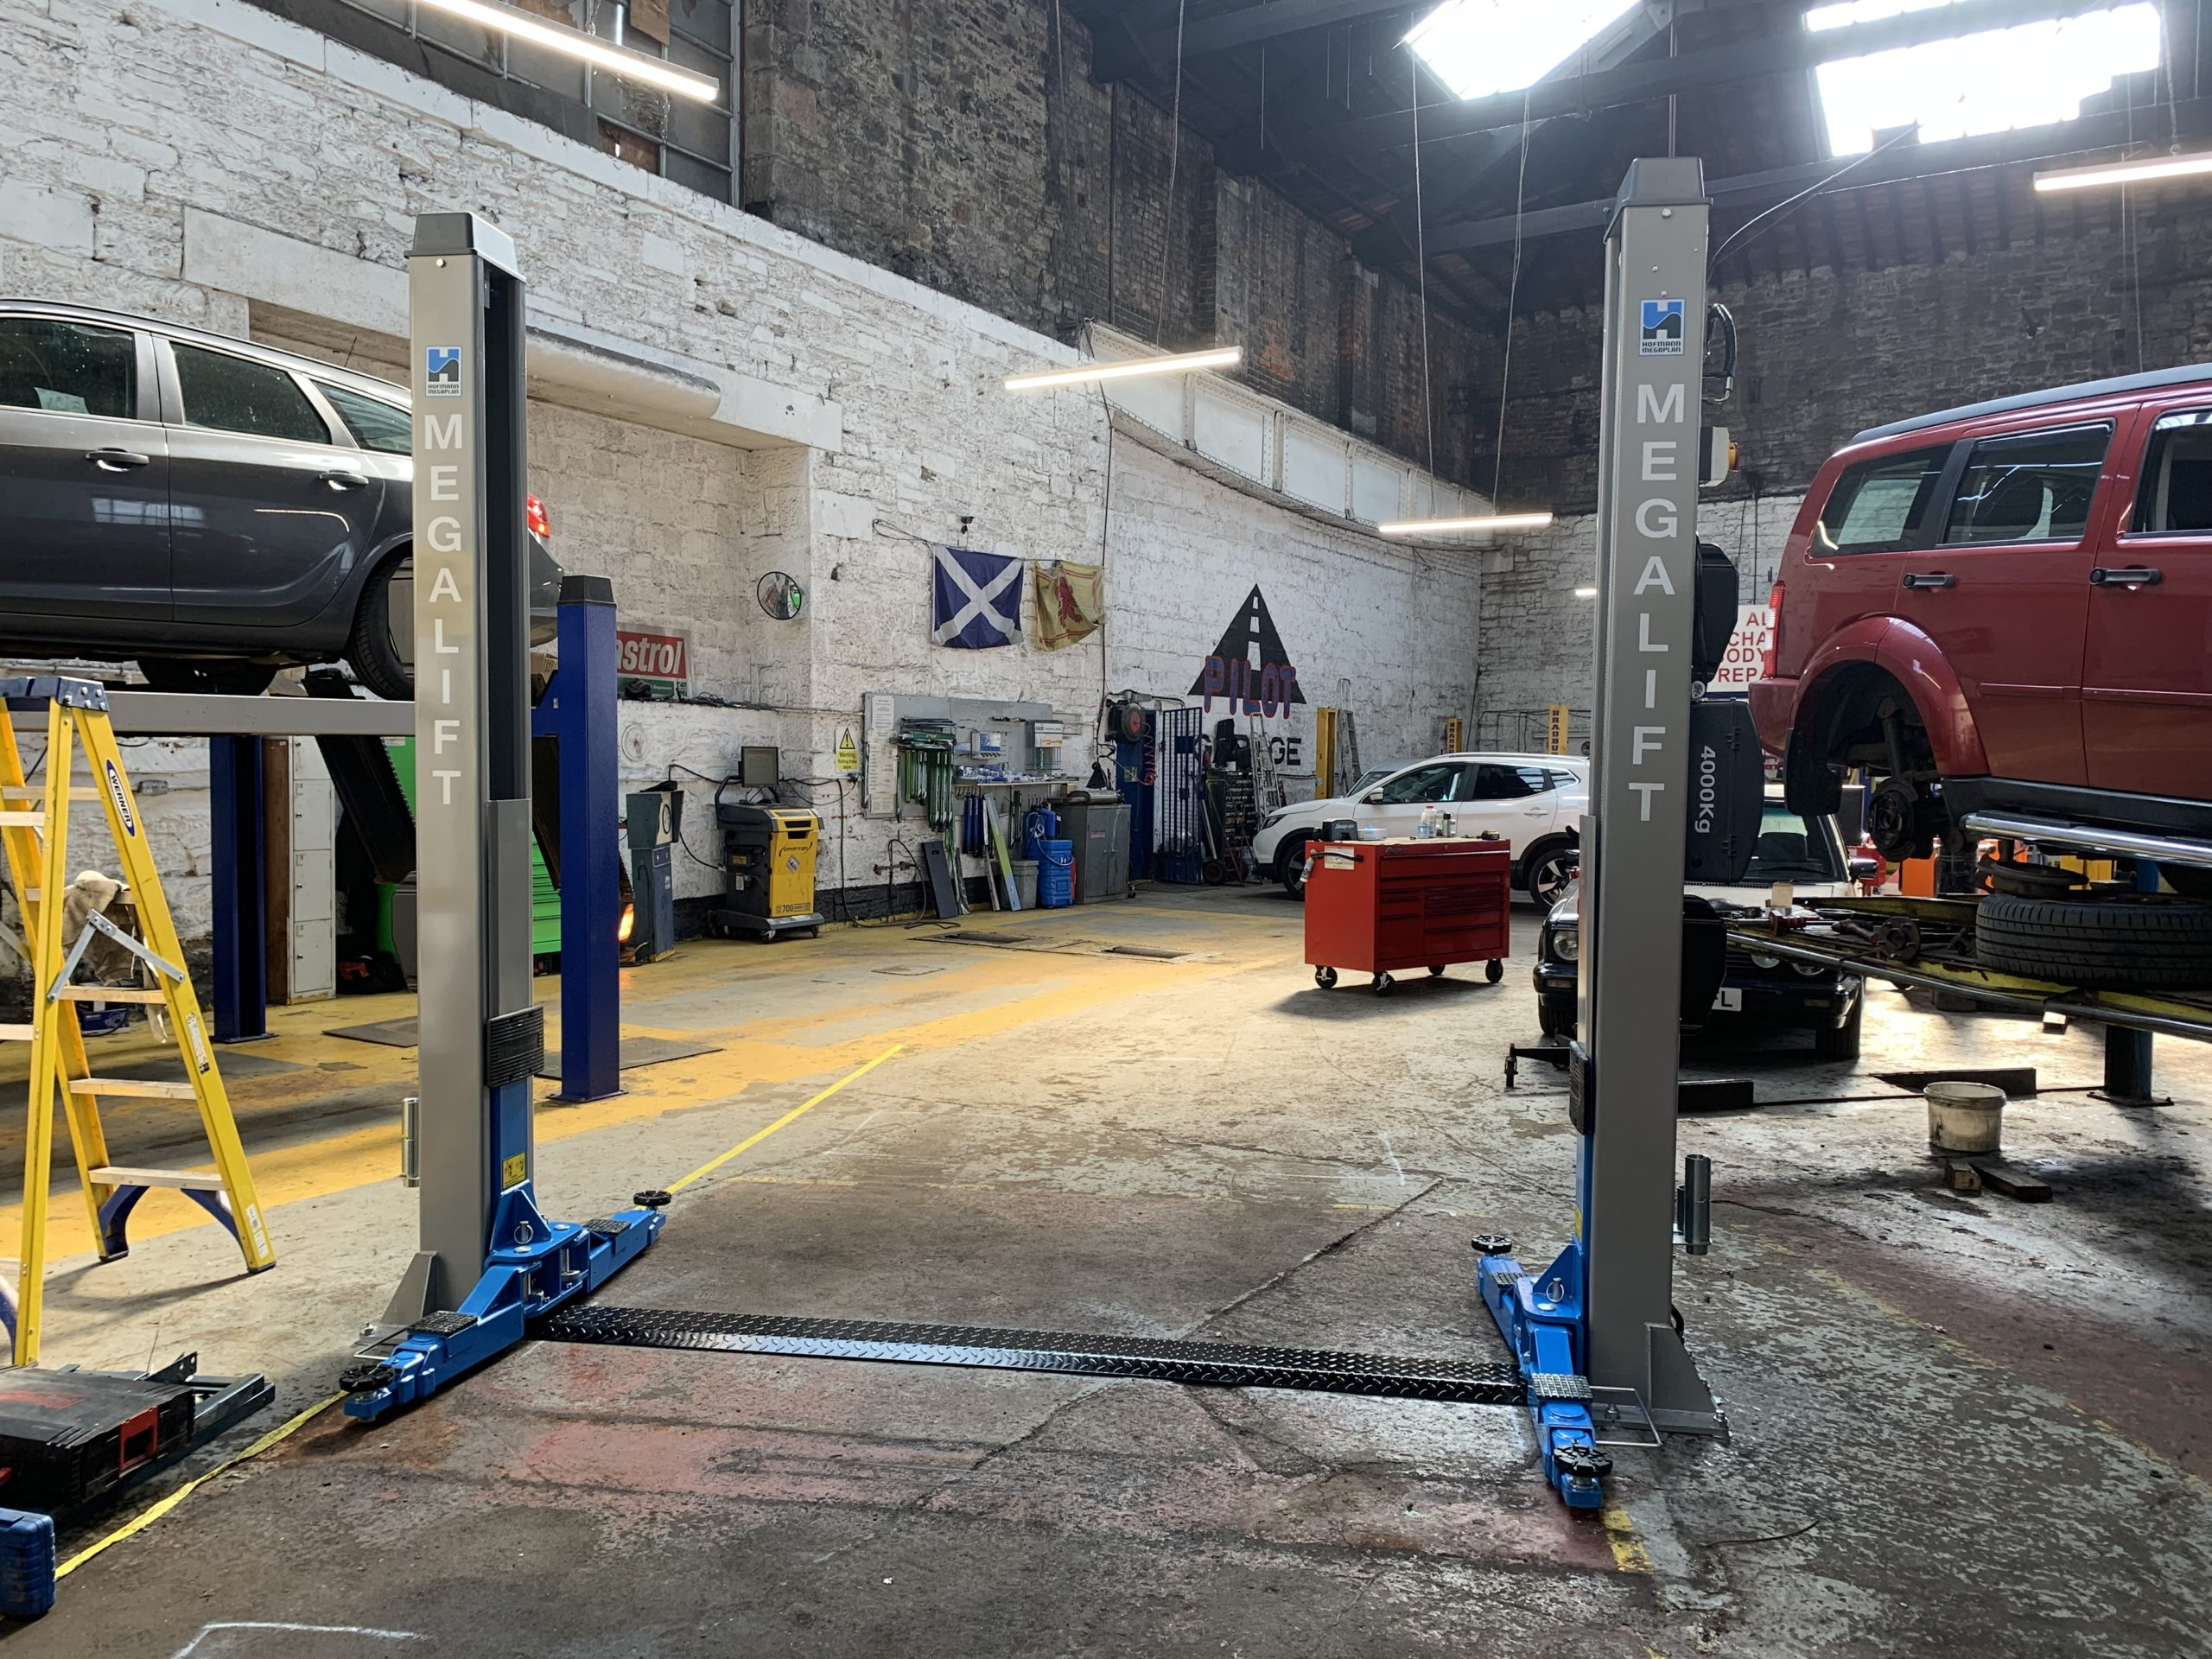 The latest megalift 4000-3 installation at the Pilot Garage in Dundee.